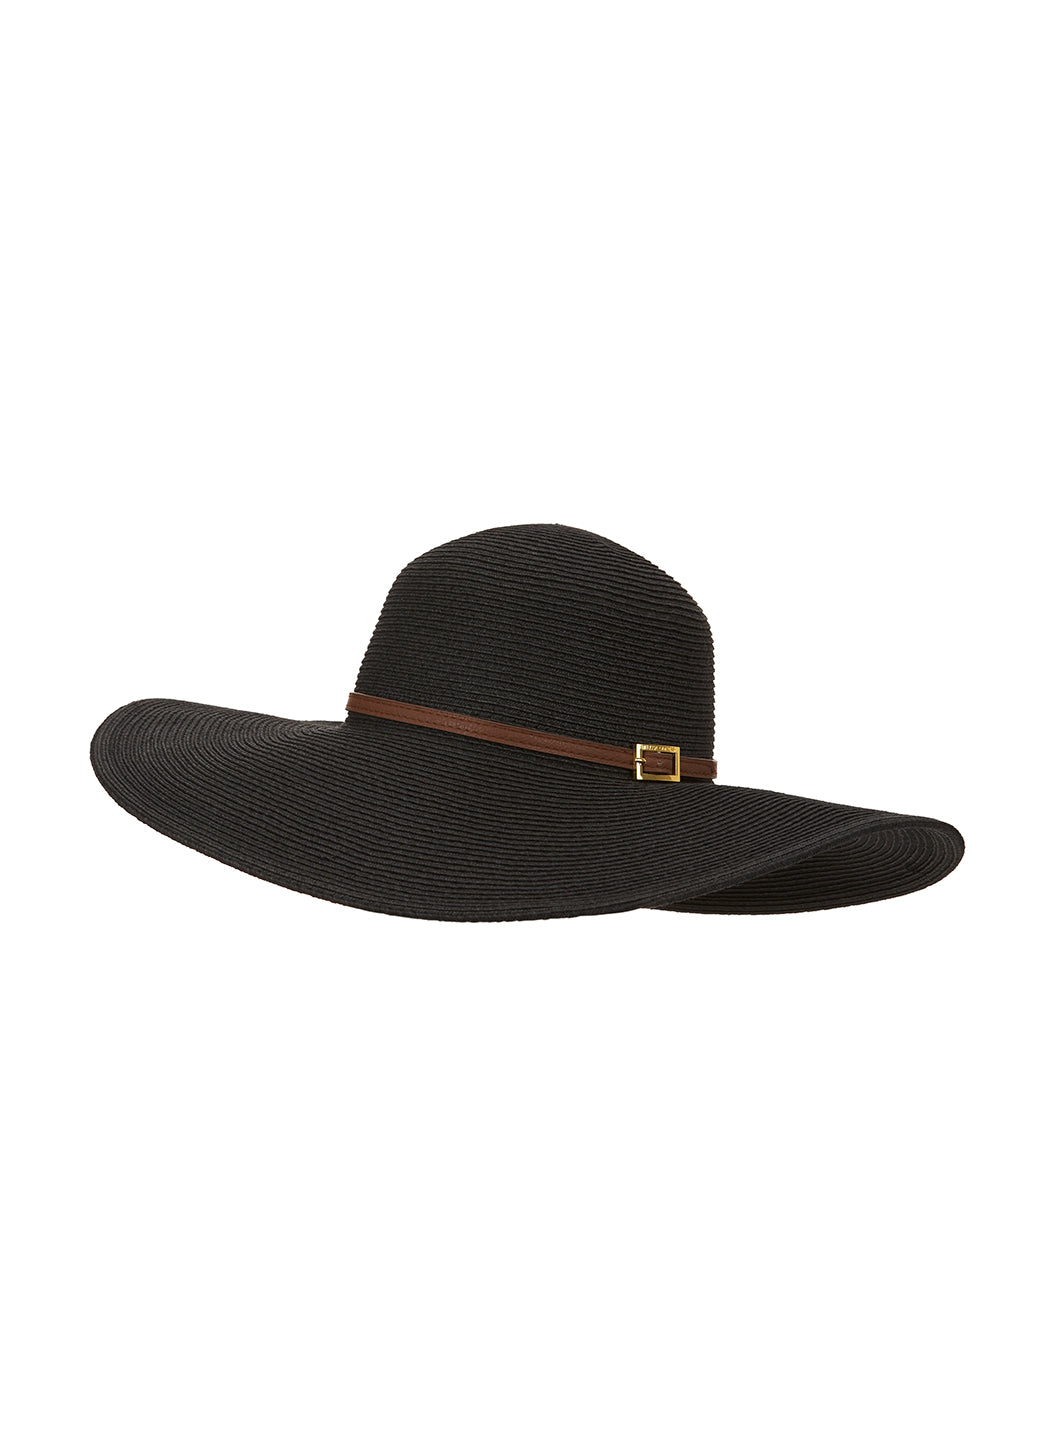 Melissa Odabash Jemima Wide Brim Beach Hat Black - Melissa Odabash Accessories